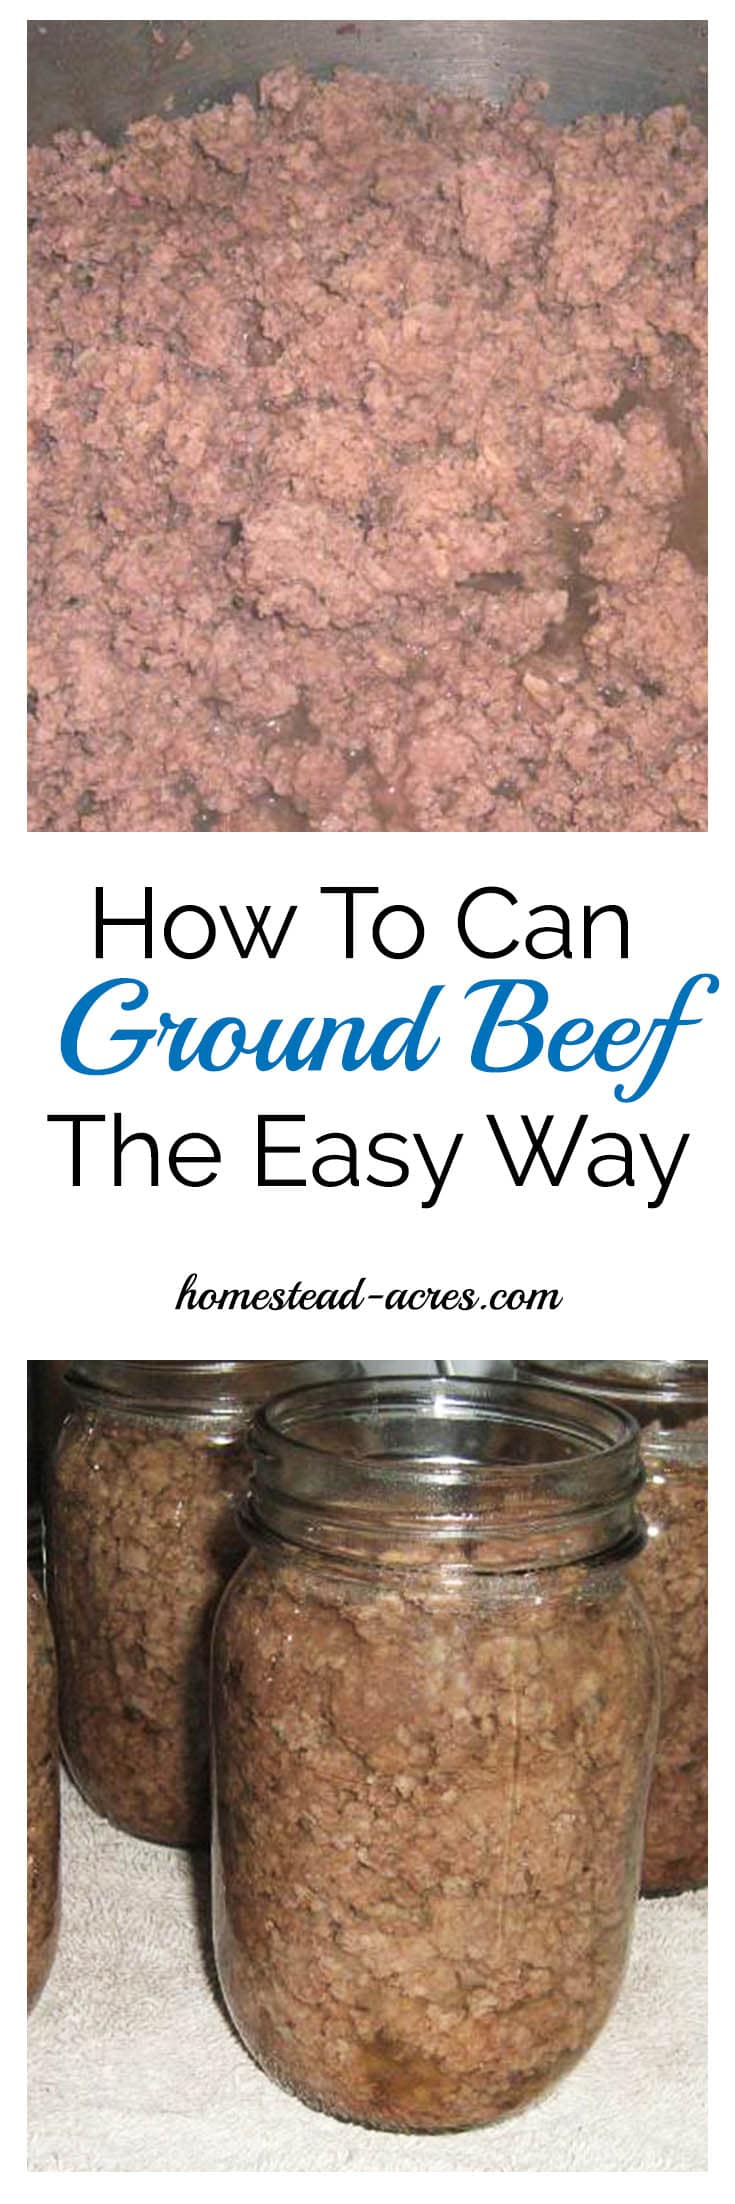 Would you like to learn how to can ground beef? Canning ground beef is really easy and so handy to have on hand. Click here to learn how to can your own or pin for later. | www.homestead-acres.com